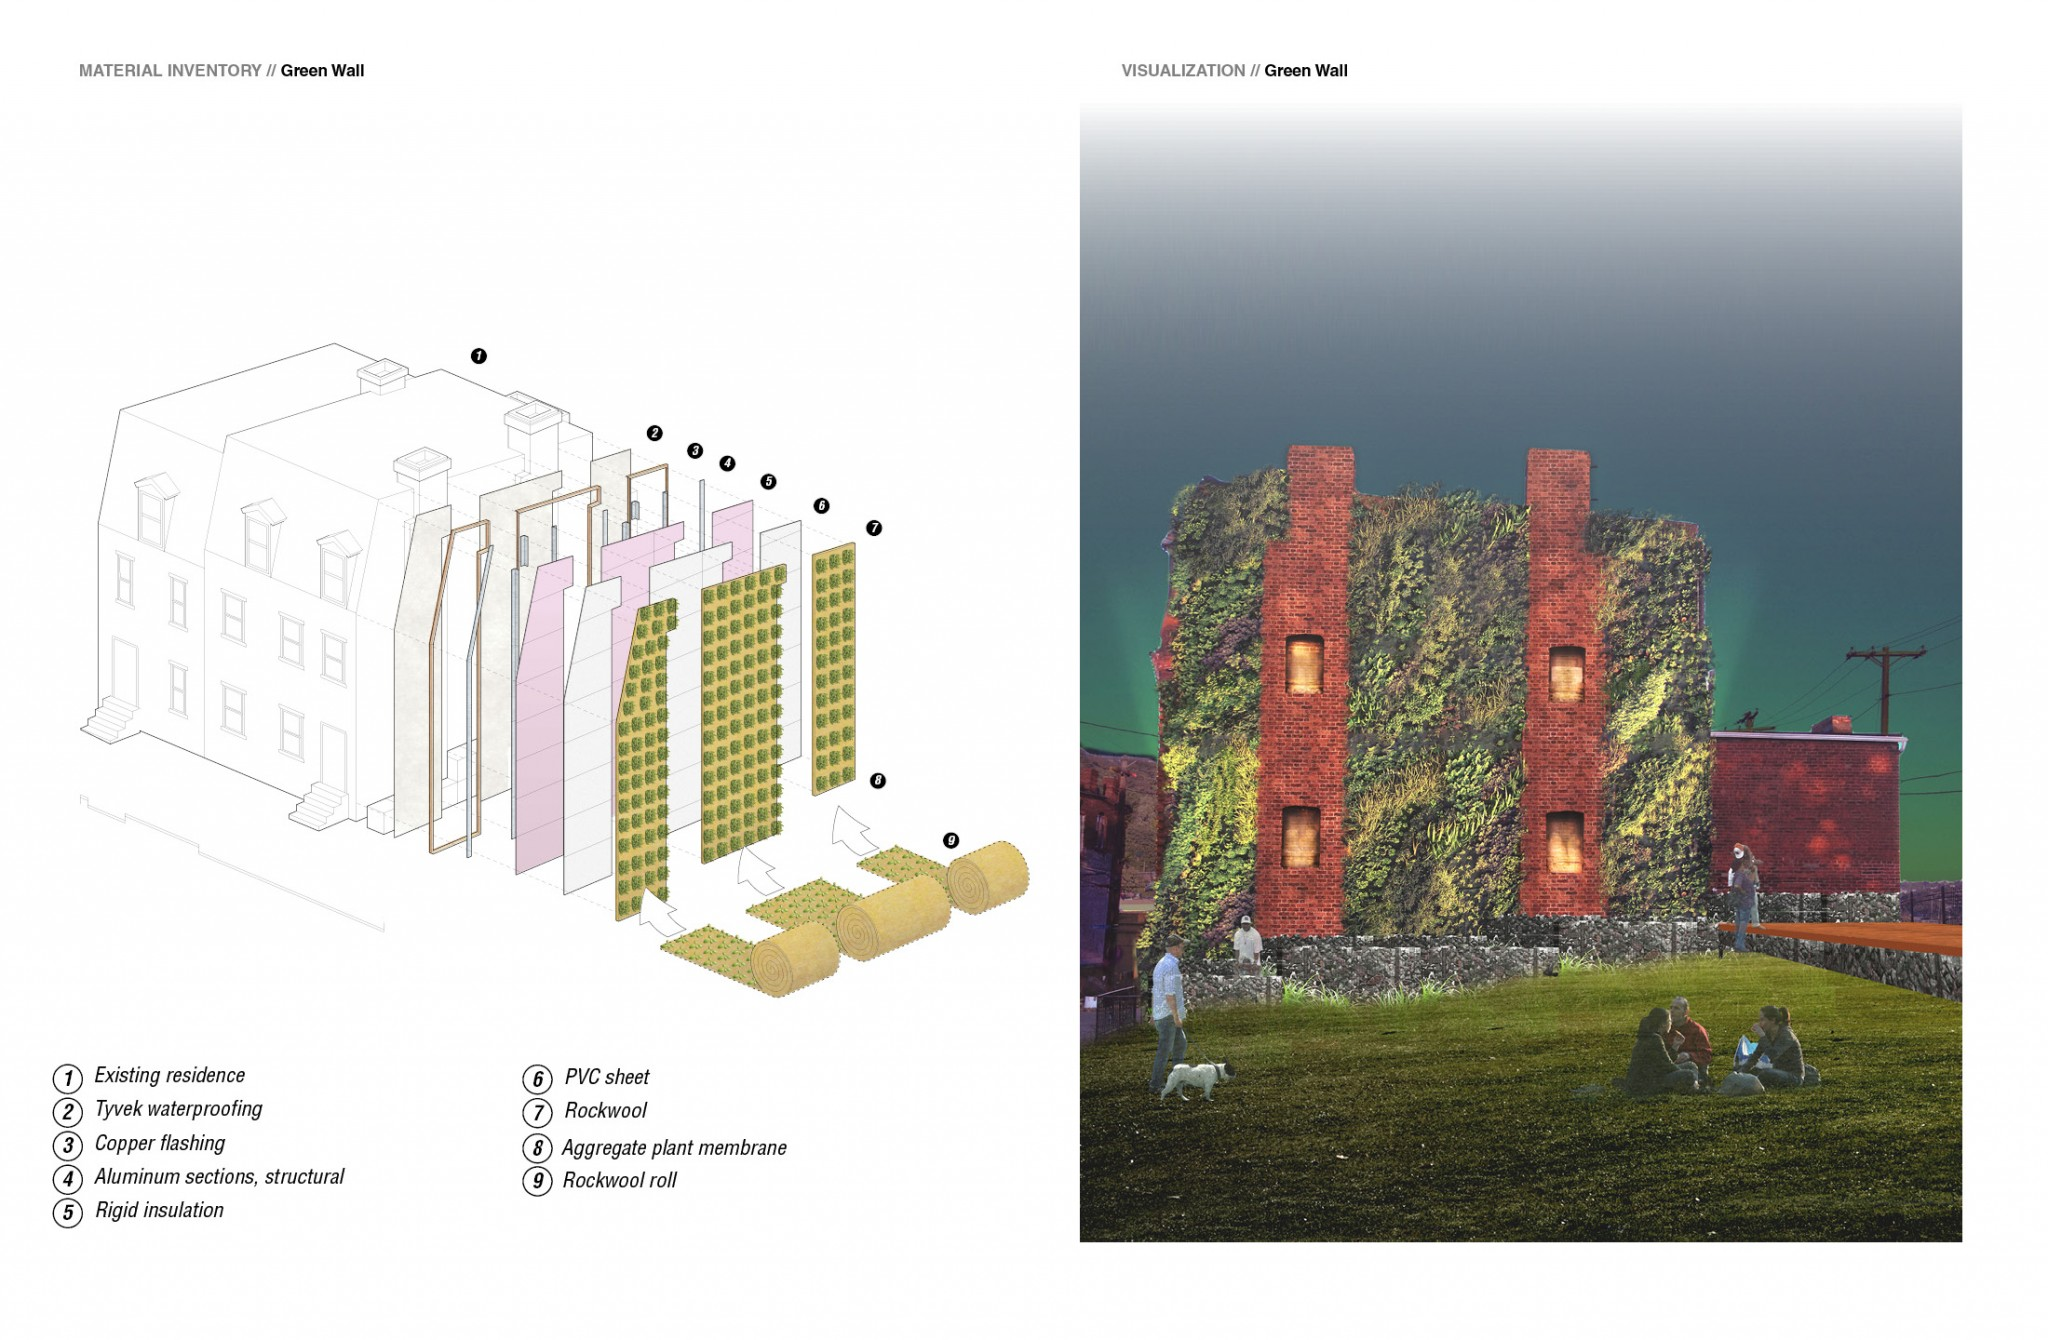 Green WallExploded Axonometric (left)  Visualization (right)